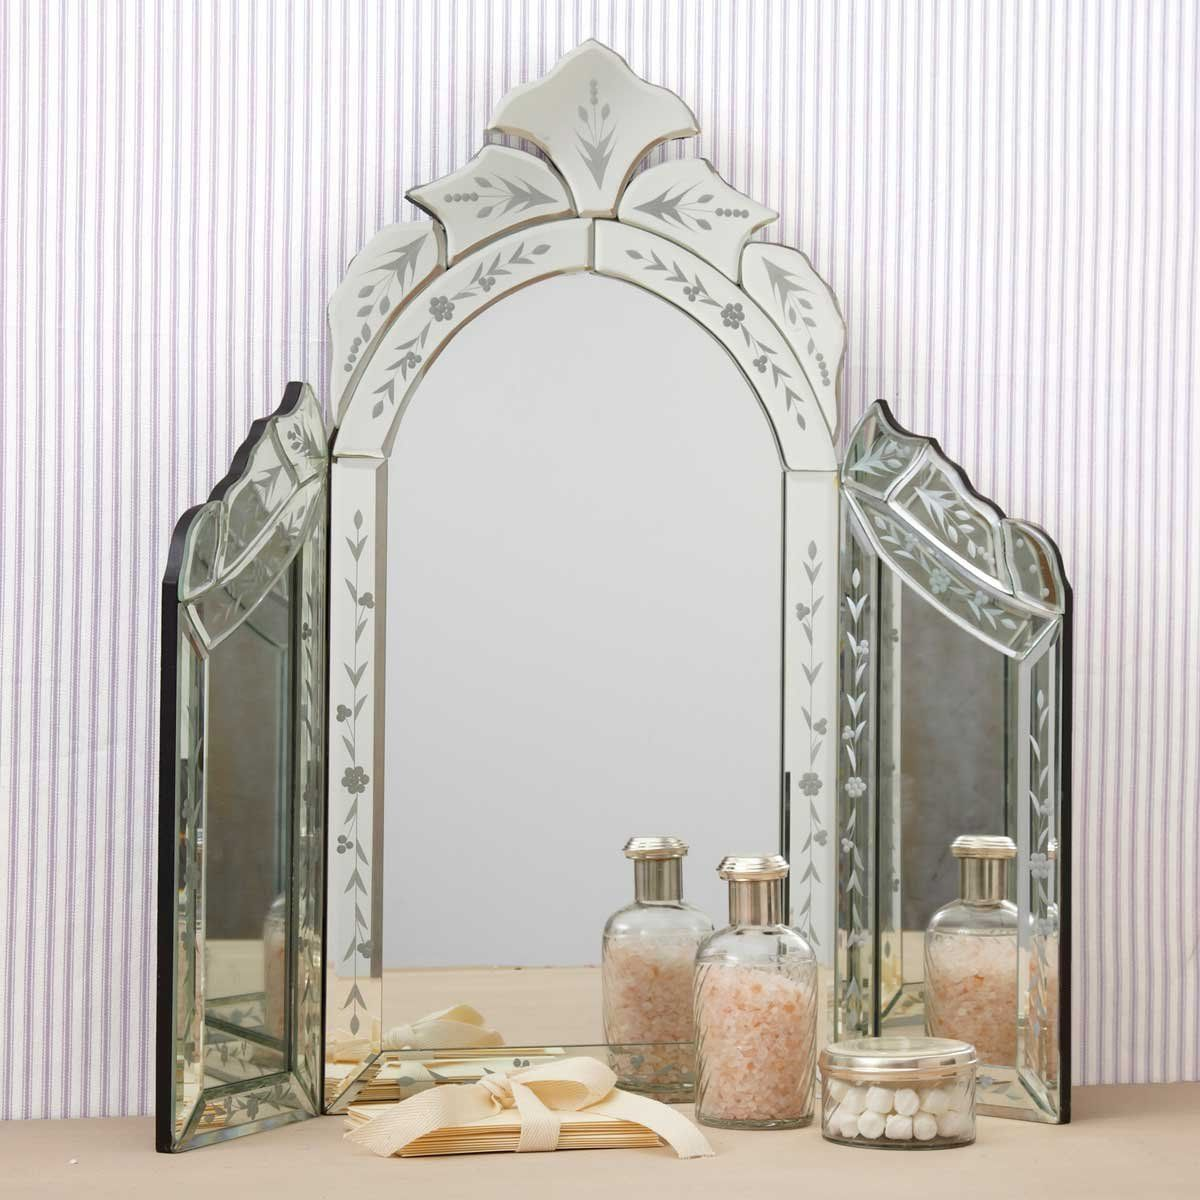 Twou0027s Company Venetian Style Dressing Table Mirror U003eu003eu003e Want To Know More,  Click